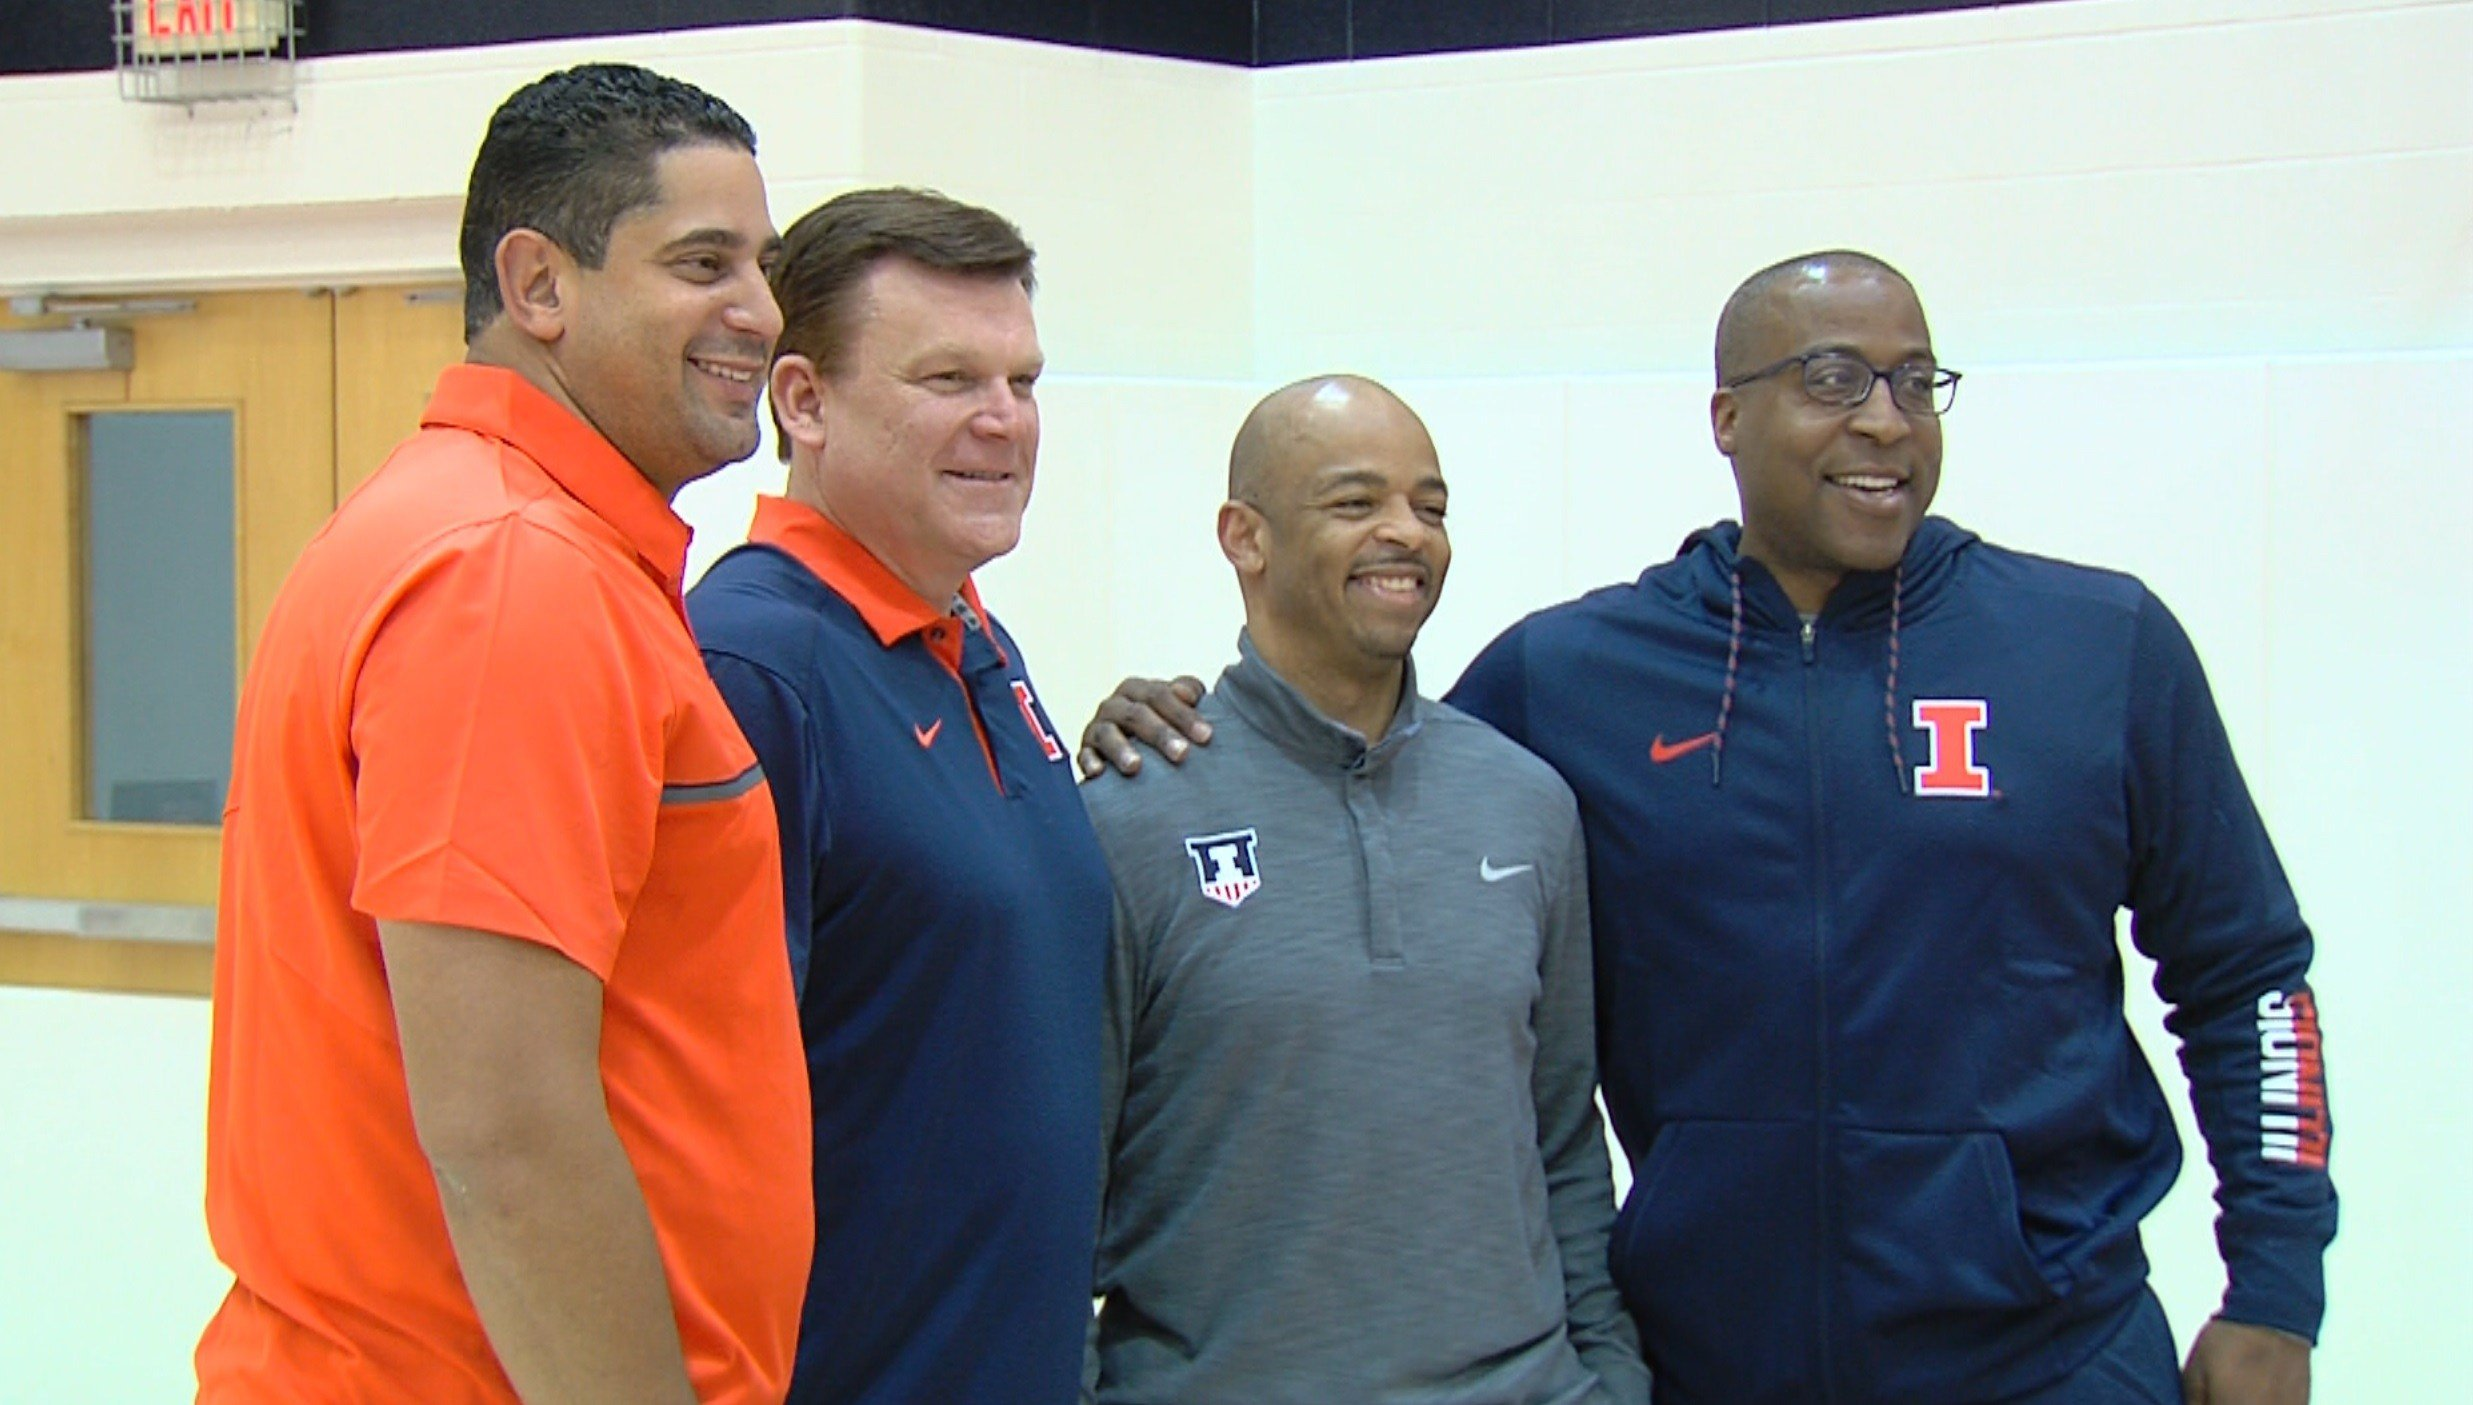 Illinois coaches Orlando Antigua, Brad Underwood, Jamall Walker and Chin Coleman (left to right) pose on Tuesday afternoon at the Ubben Basketball Complex on campus.